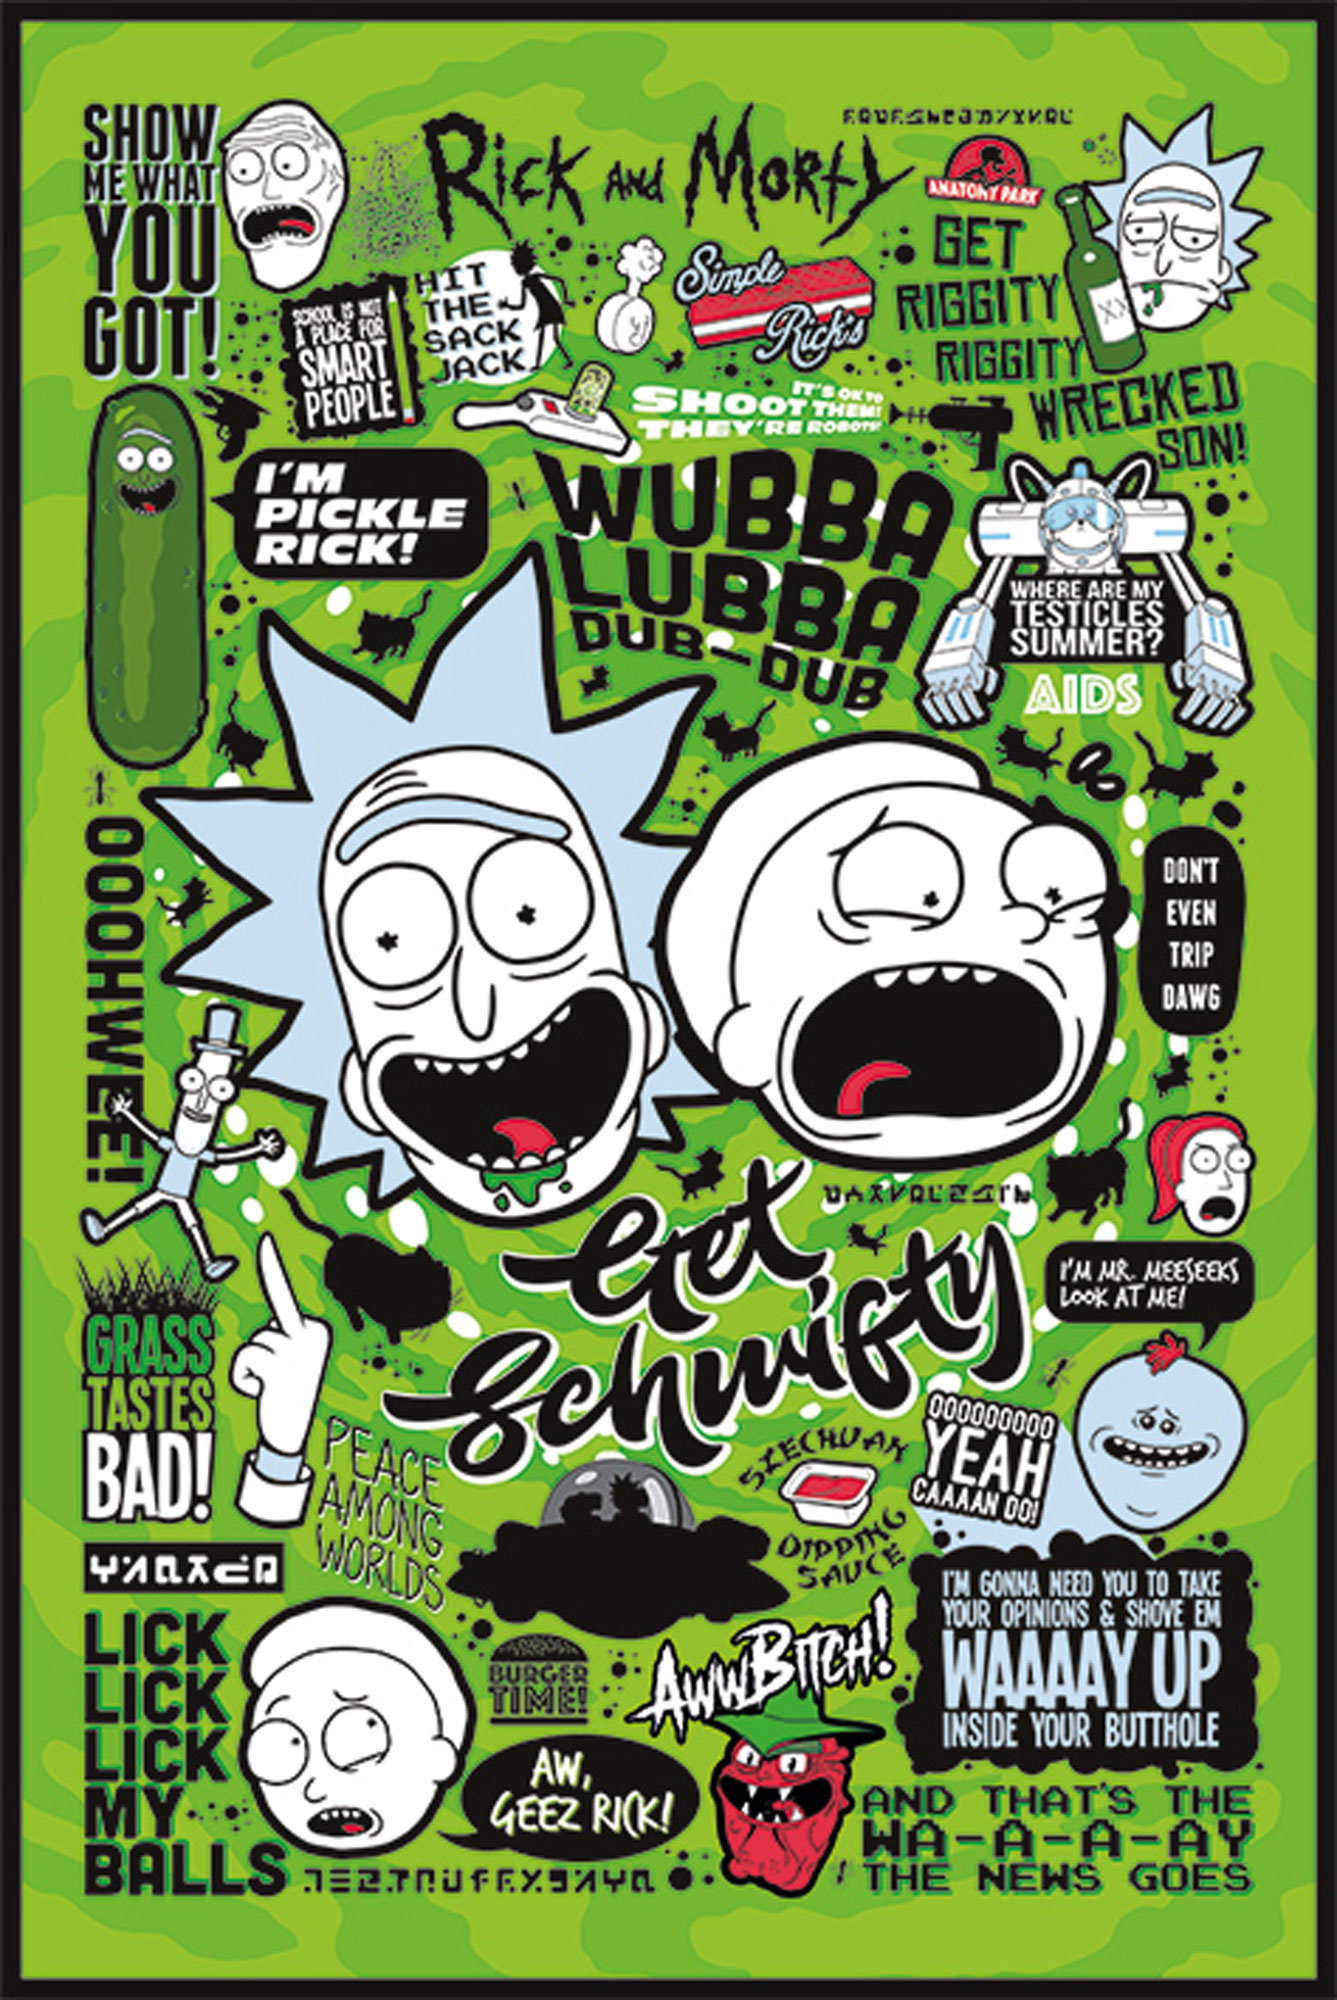 RICK AND MORTY - Quotes - Green - Poster Druck - Größe 61x91,5 cm ...